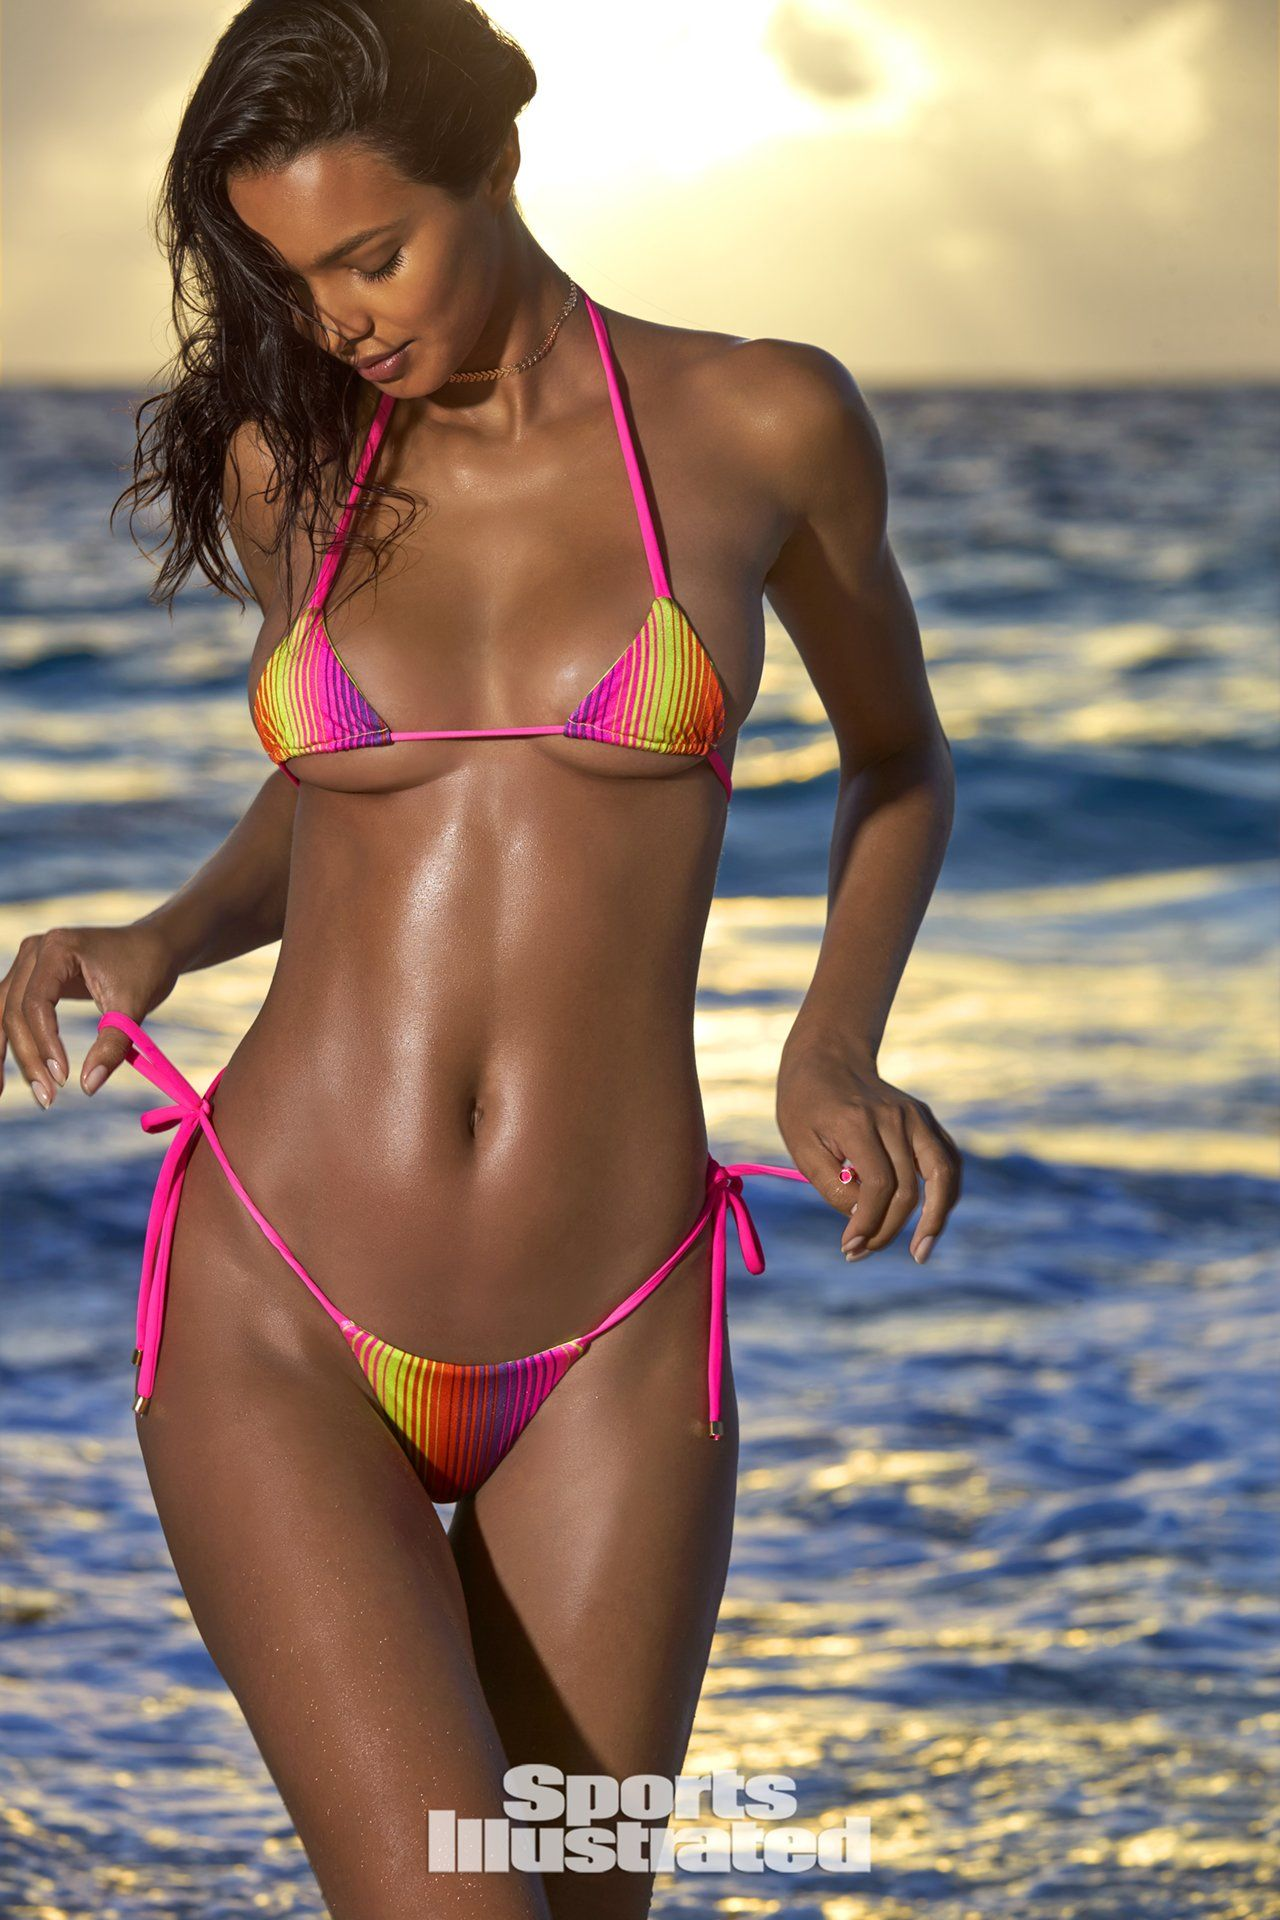 f081194bad Lais Ribeiro was photographed by Ben Watts in the Bahamas. Swimsuit by Ola  Vida.